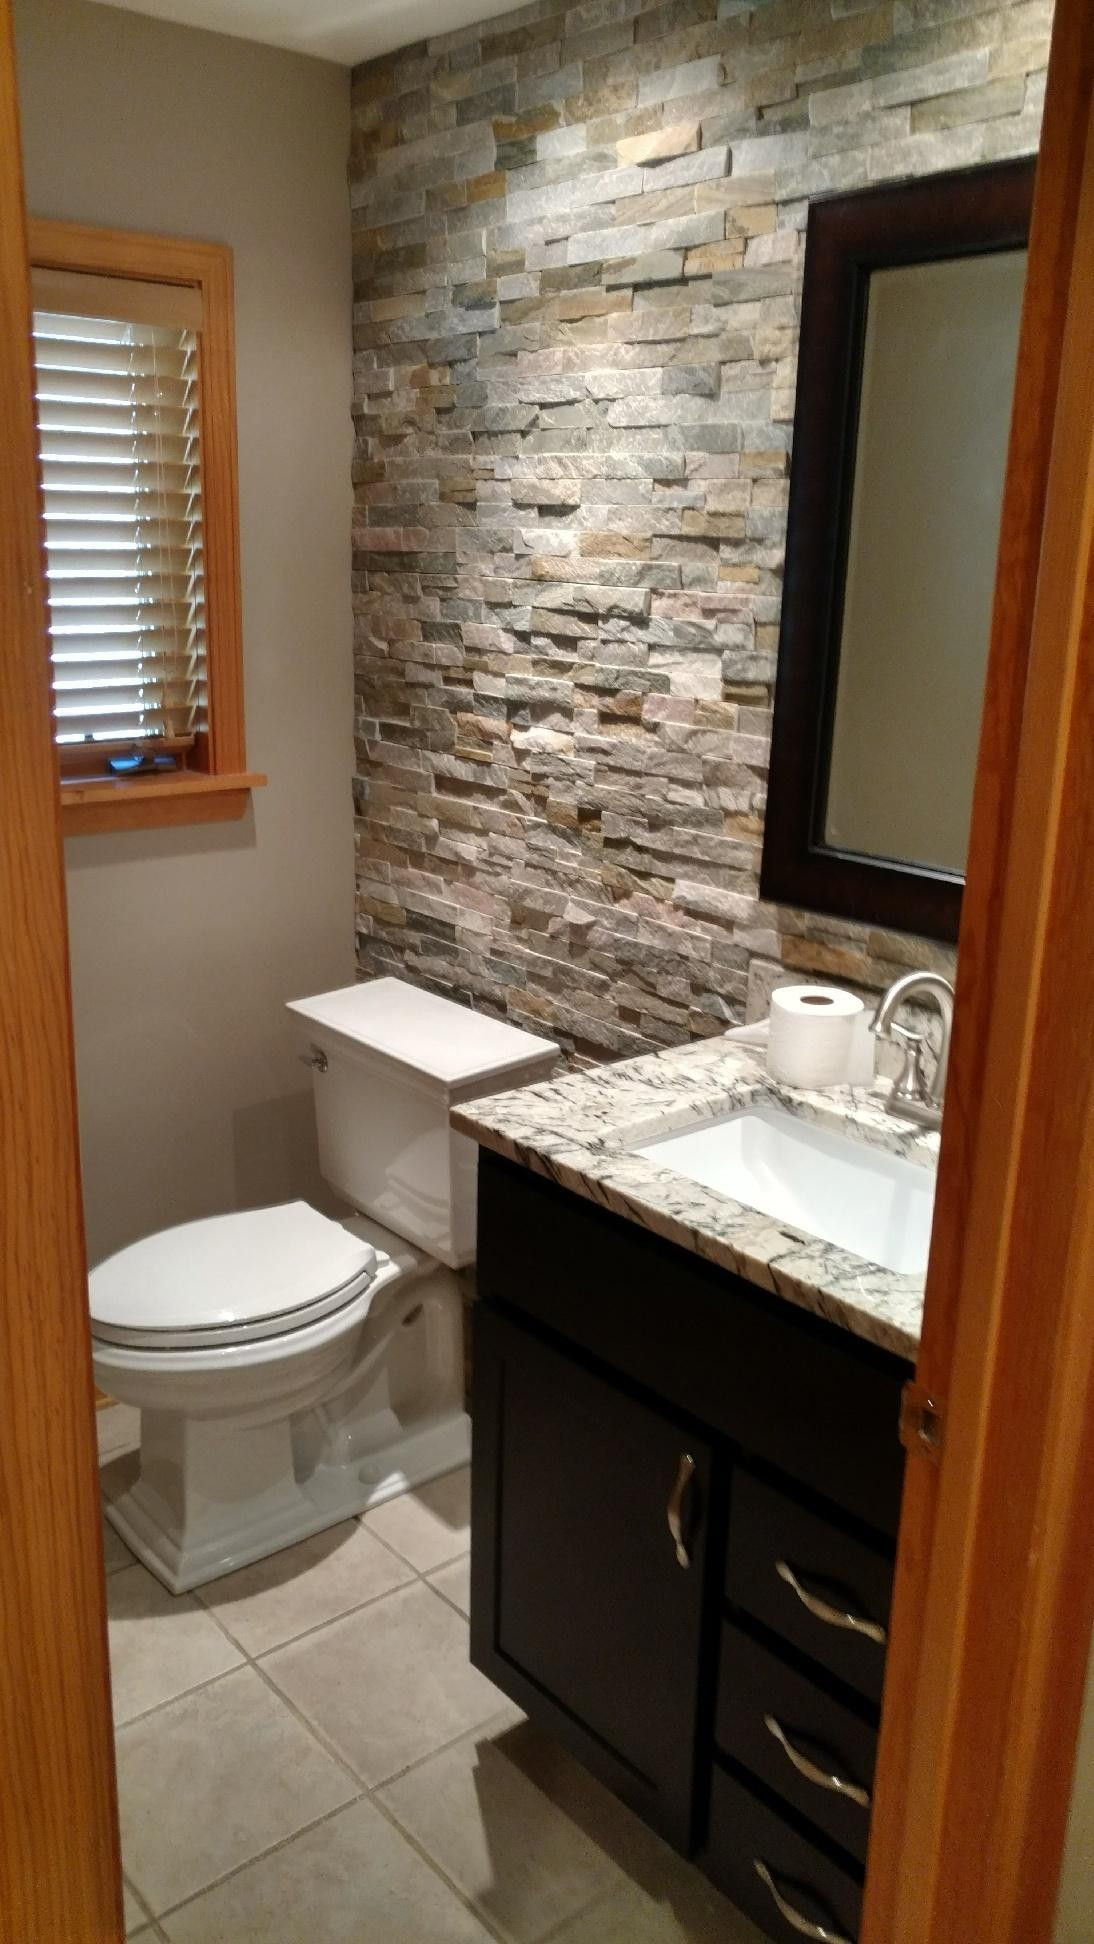 Best ideas about Accent Wall Bathroom . Save or Pin Stone accent wall bathroom Now.